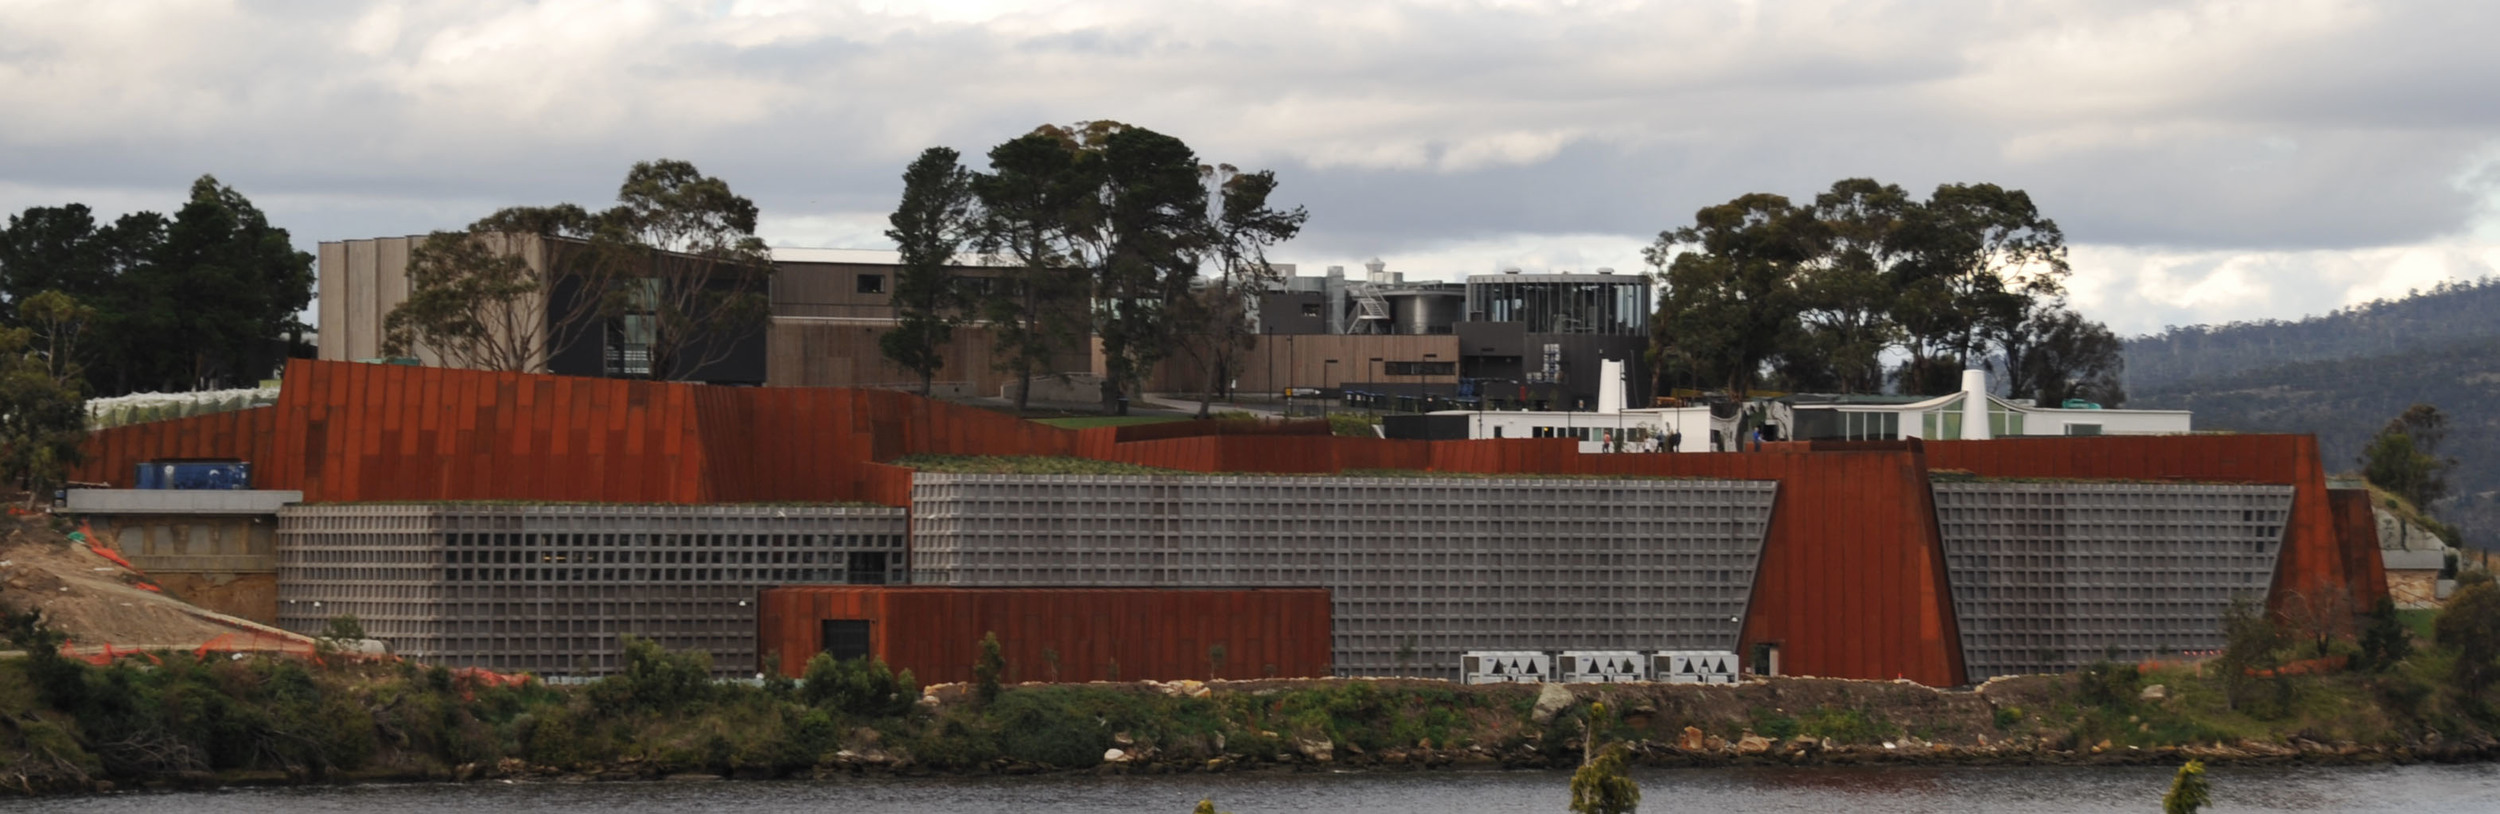 The Museum of Old and New Art , Hobart, Tasmania